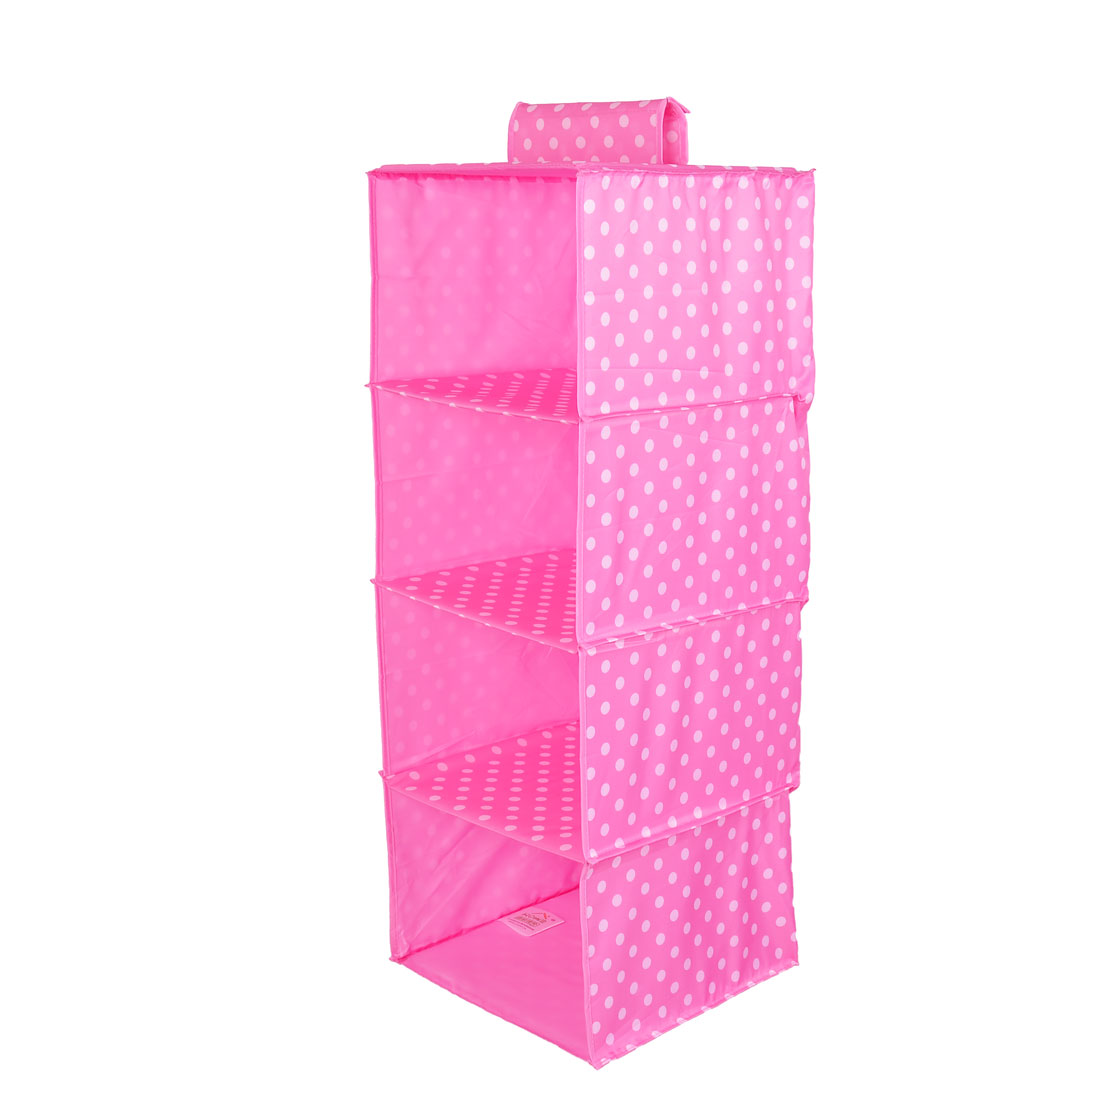 Foldable 4 Compartments Dots Pattern Clothes Underwear Organizer Storage Box Pink